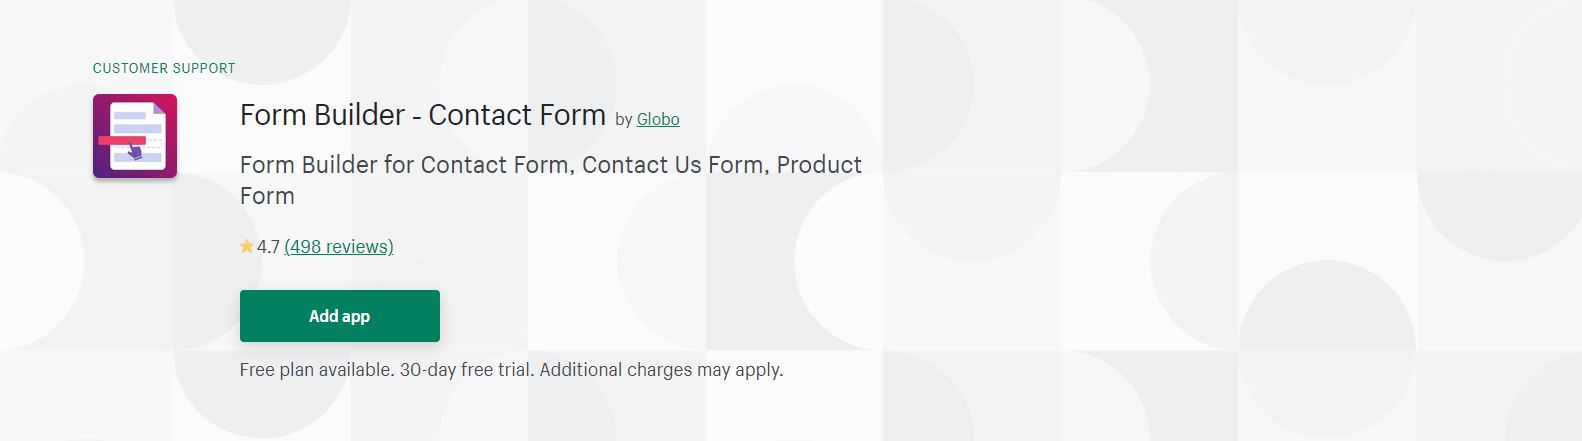 Form Builder ‑ Contact Form